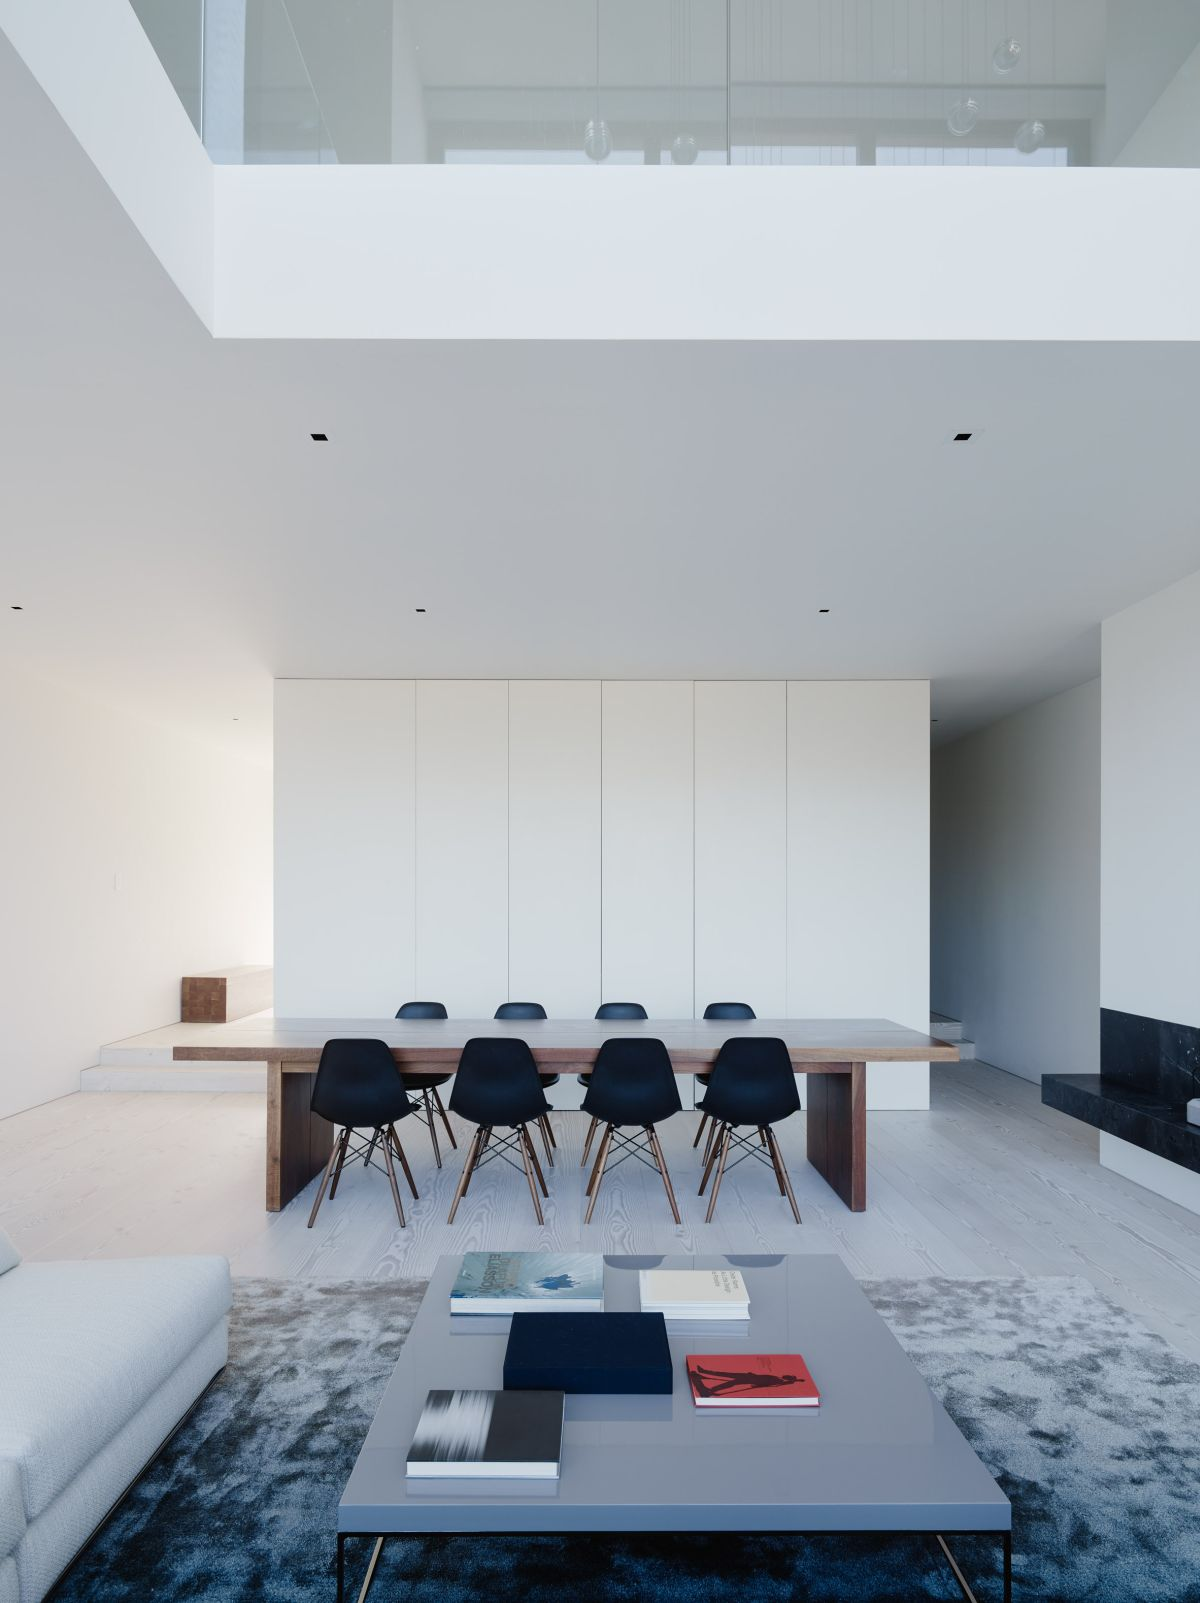 The interior design is minimalist and features an all-white palette, the walls representing blank canvases for the furniture to contrast with